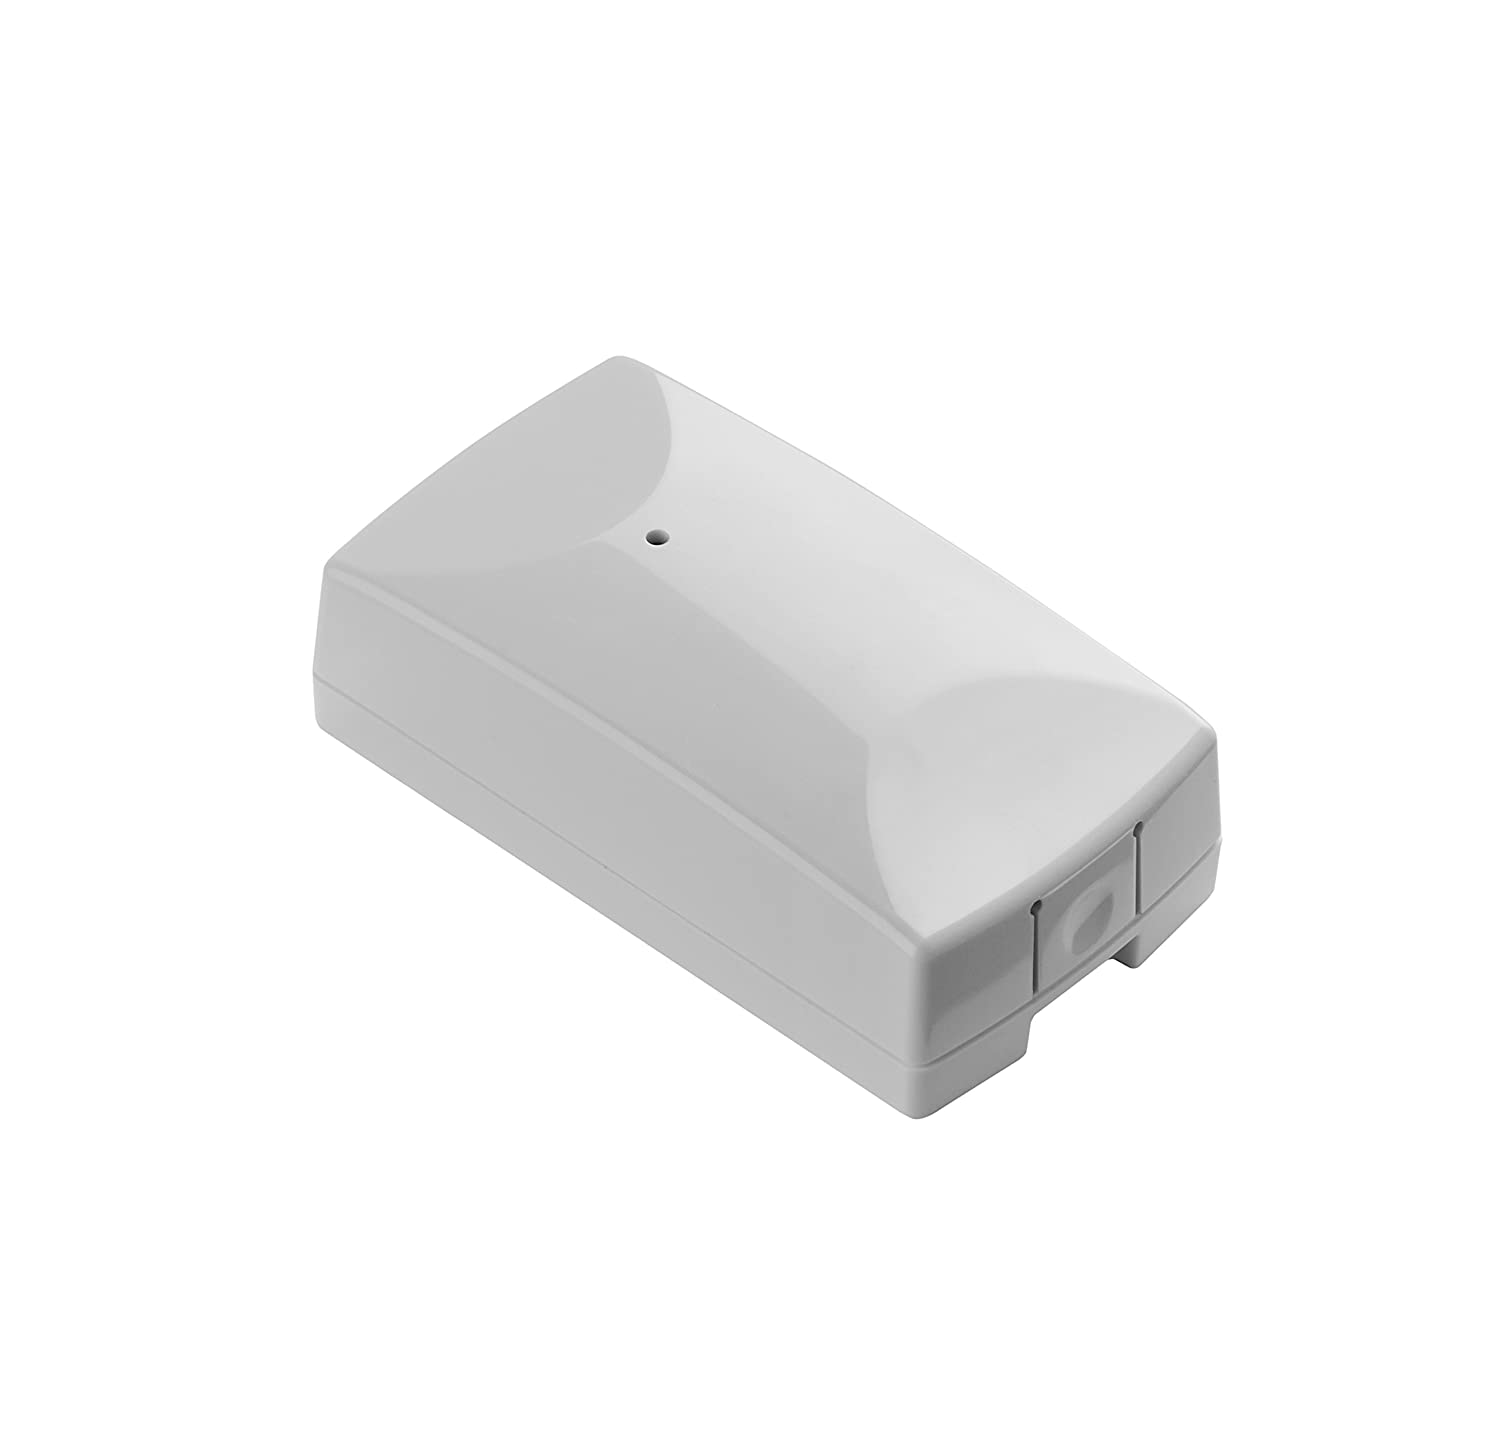 Ecolink Intelligent Technology Z-Wave Featuring Gold Plated Components, White & Brown (TILT-ZWAVE2-ECO) Ecolink 28617953415